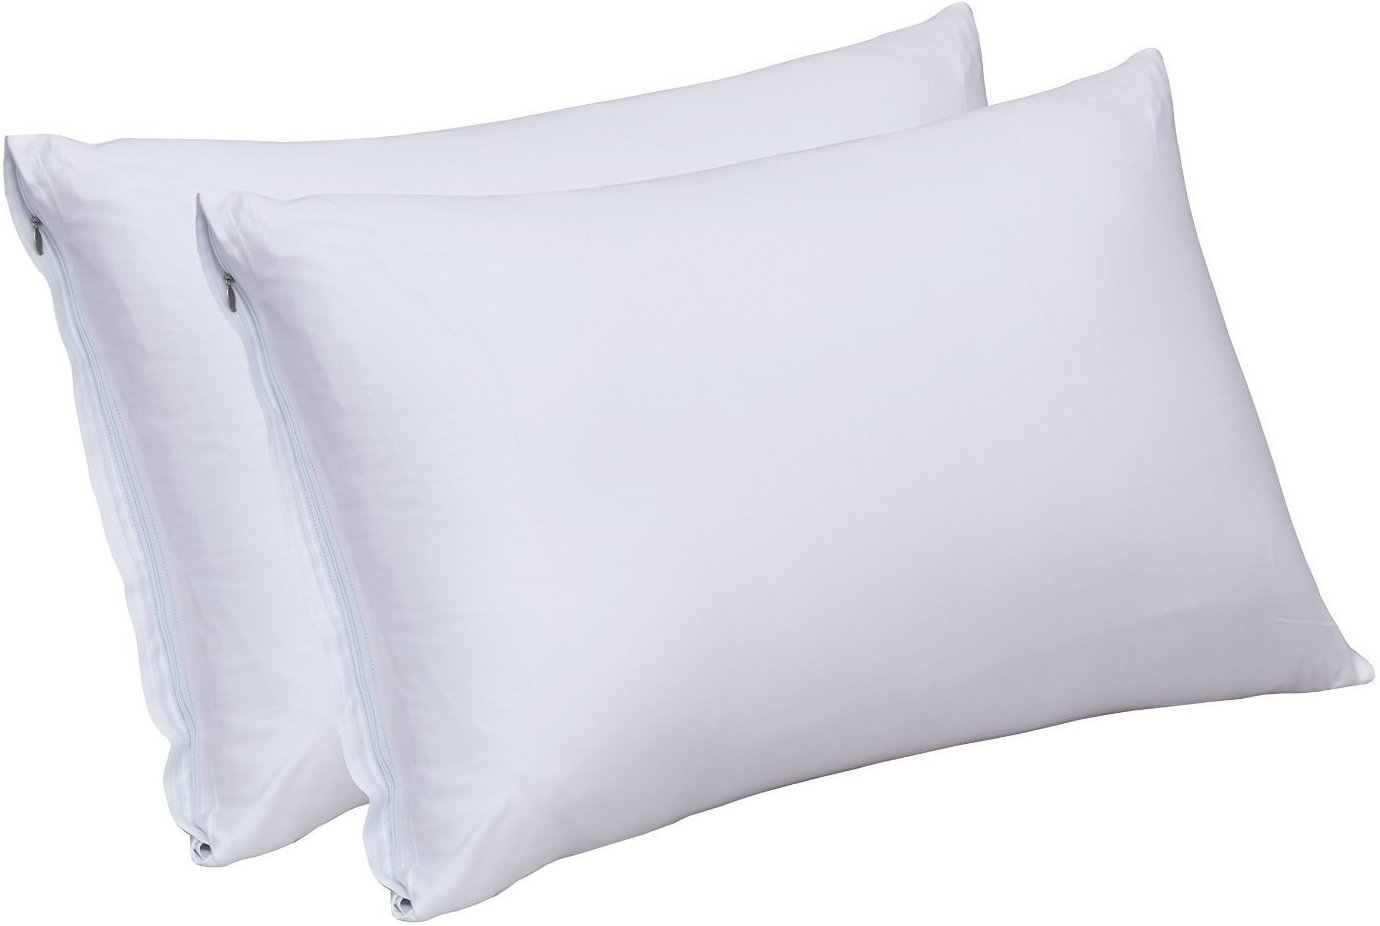 Utopia Bedding Bamboo Pillow Covers (Queen, White)